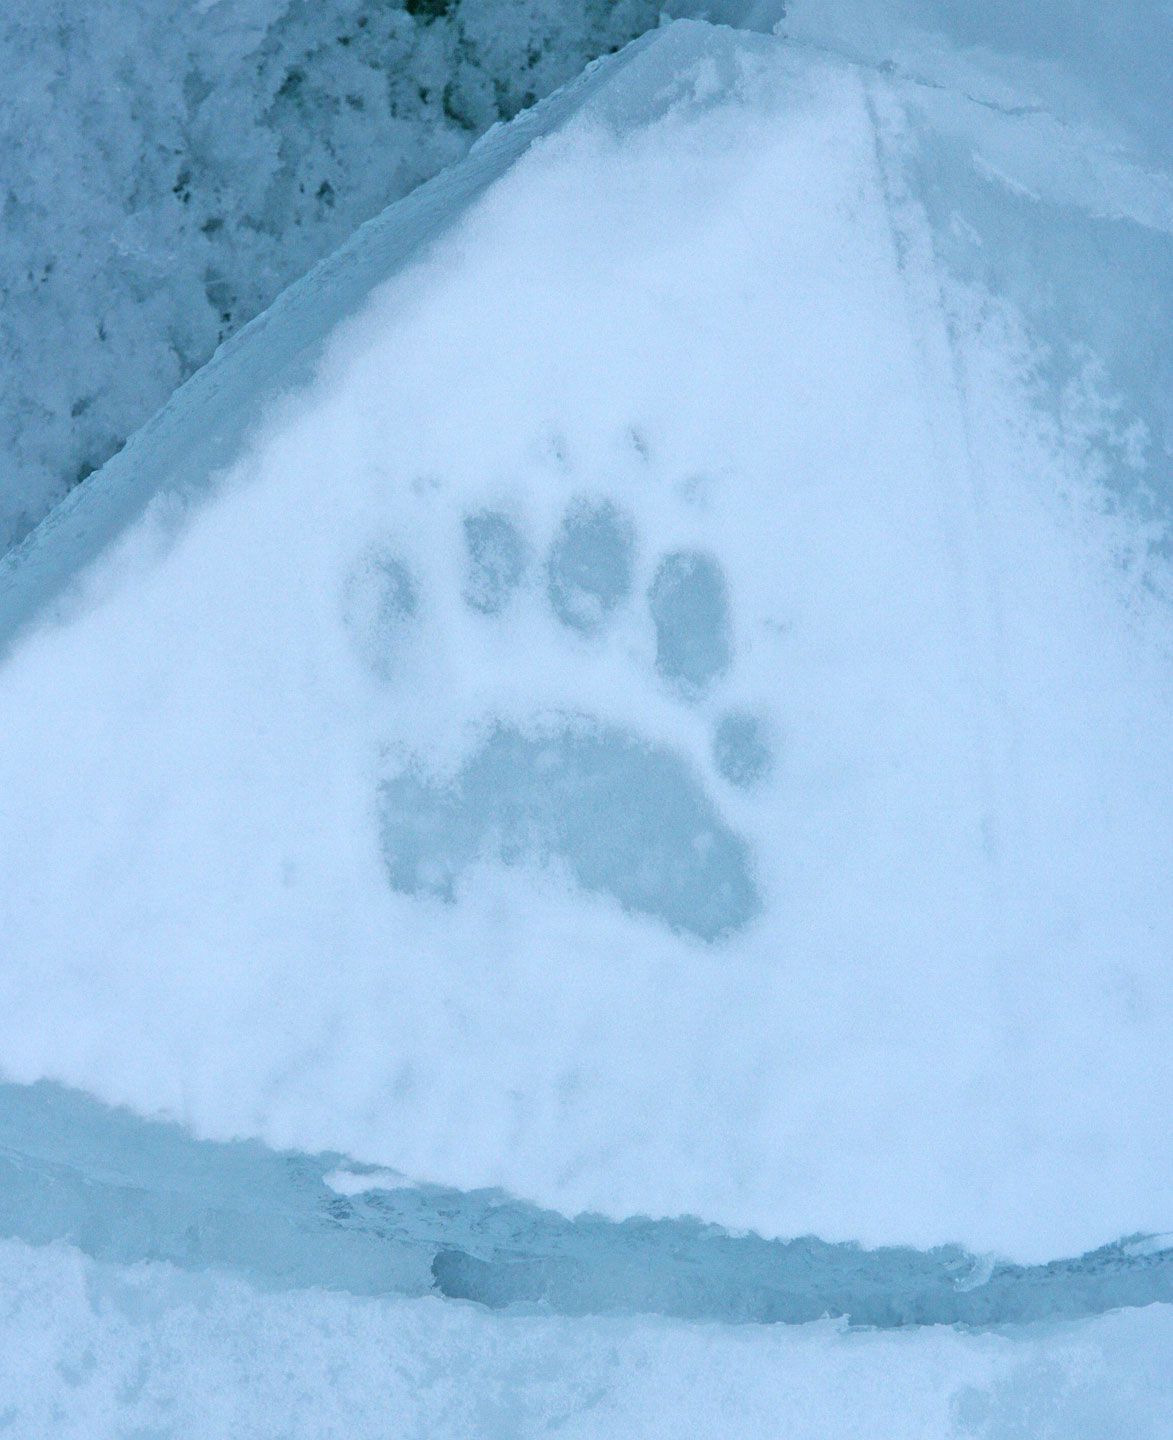 file a polar bear paw print on the ice in the arctic ocean north